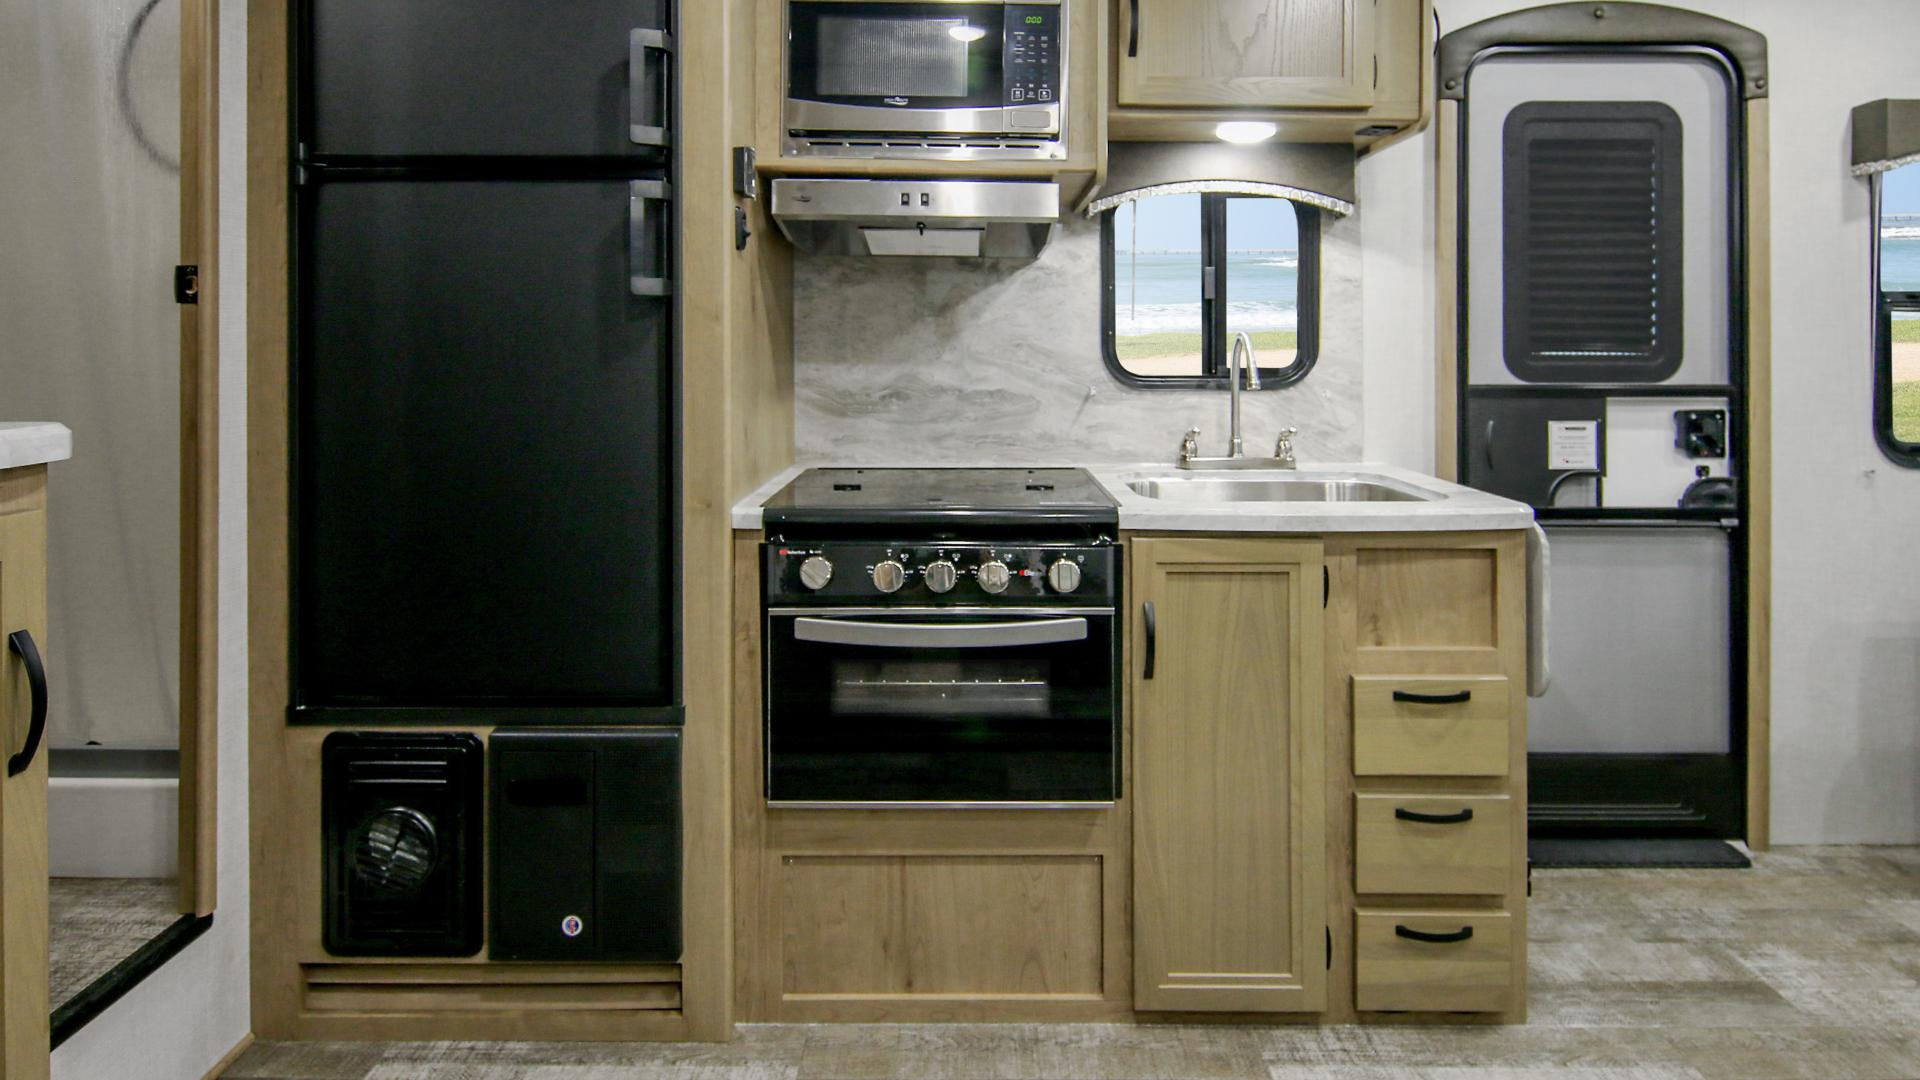 Micro Minnie Fifth Wheel 2405RL galley featuring a stove, oven, refrigerator and sink